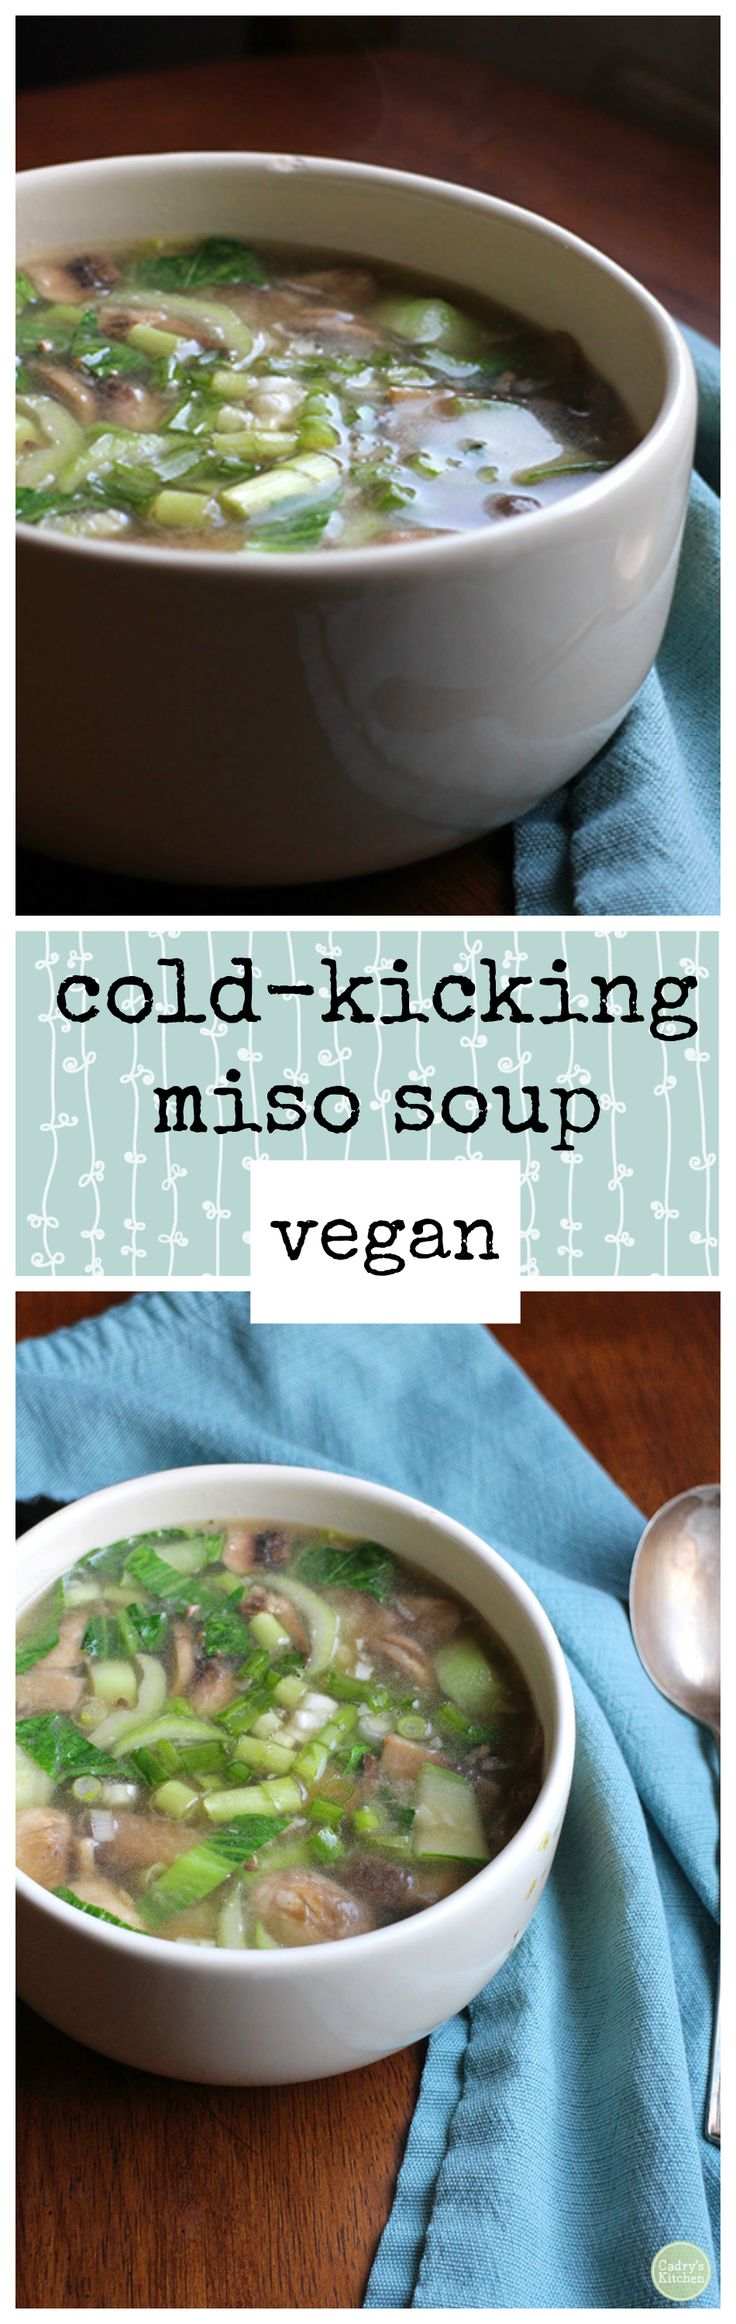 This cold-kicking miso soup is soothing to the throat and body. It's brimming with mushrooms, bok choy, and garlic. | cadryskitchen.com #vegan